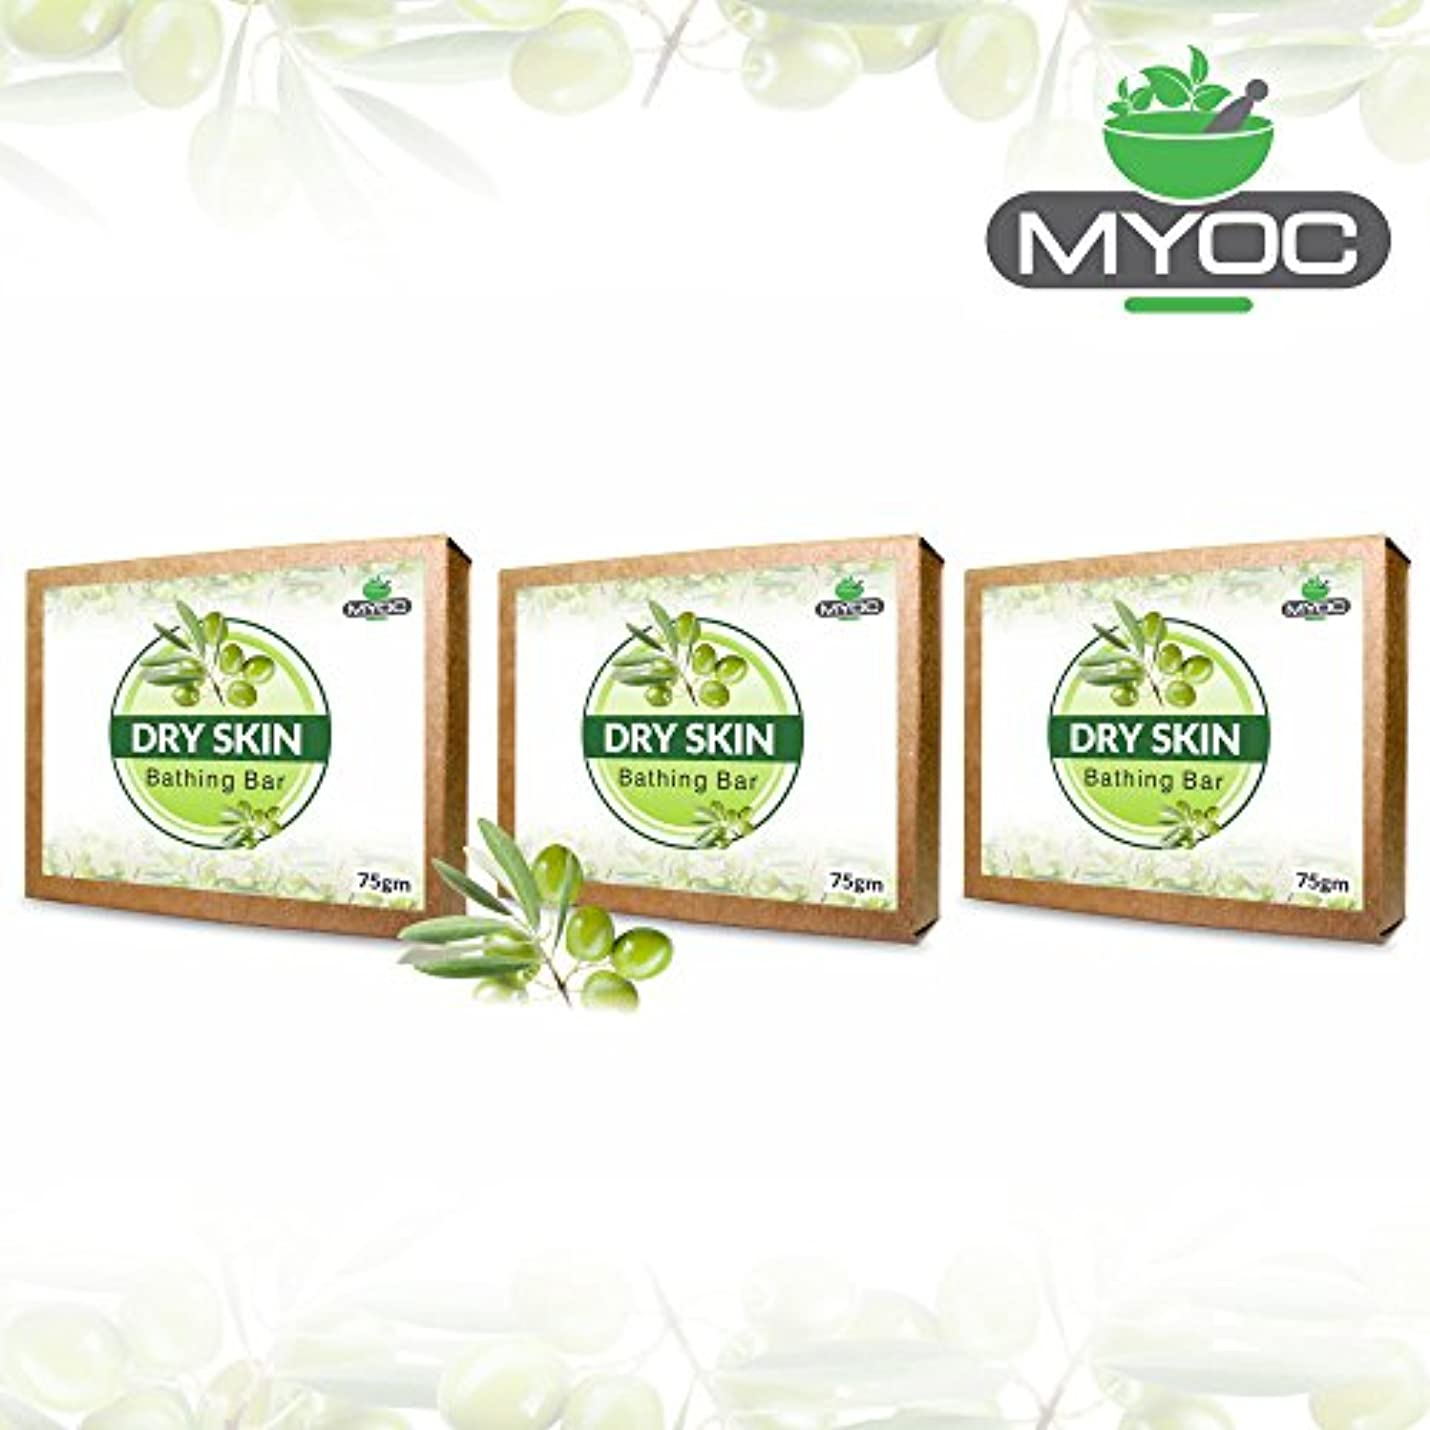 Olive oil and glycerine soap for dry skin 75gm x 3 Pack